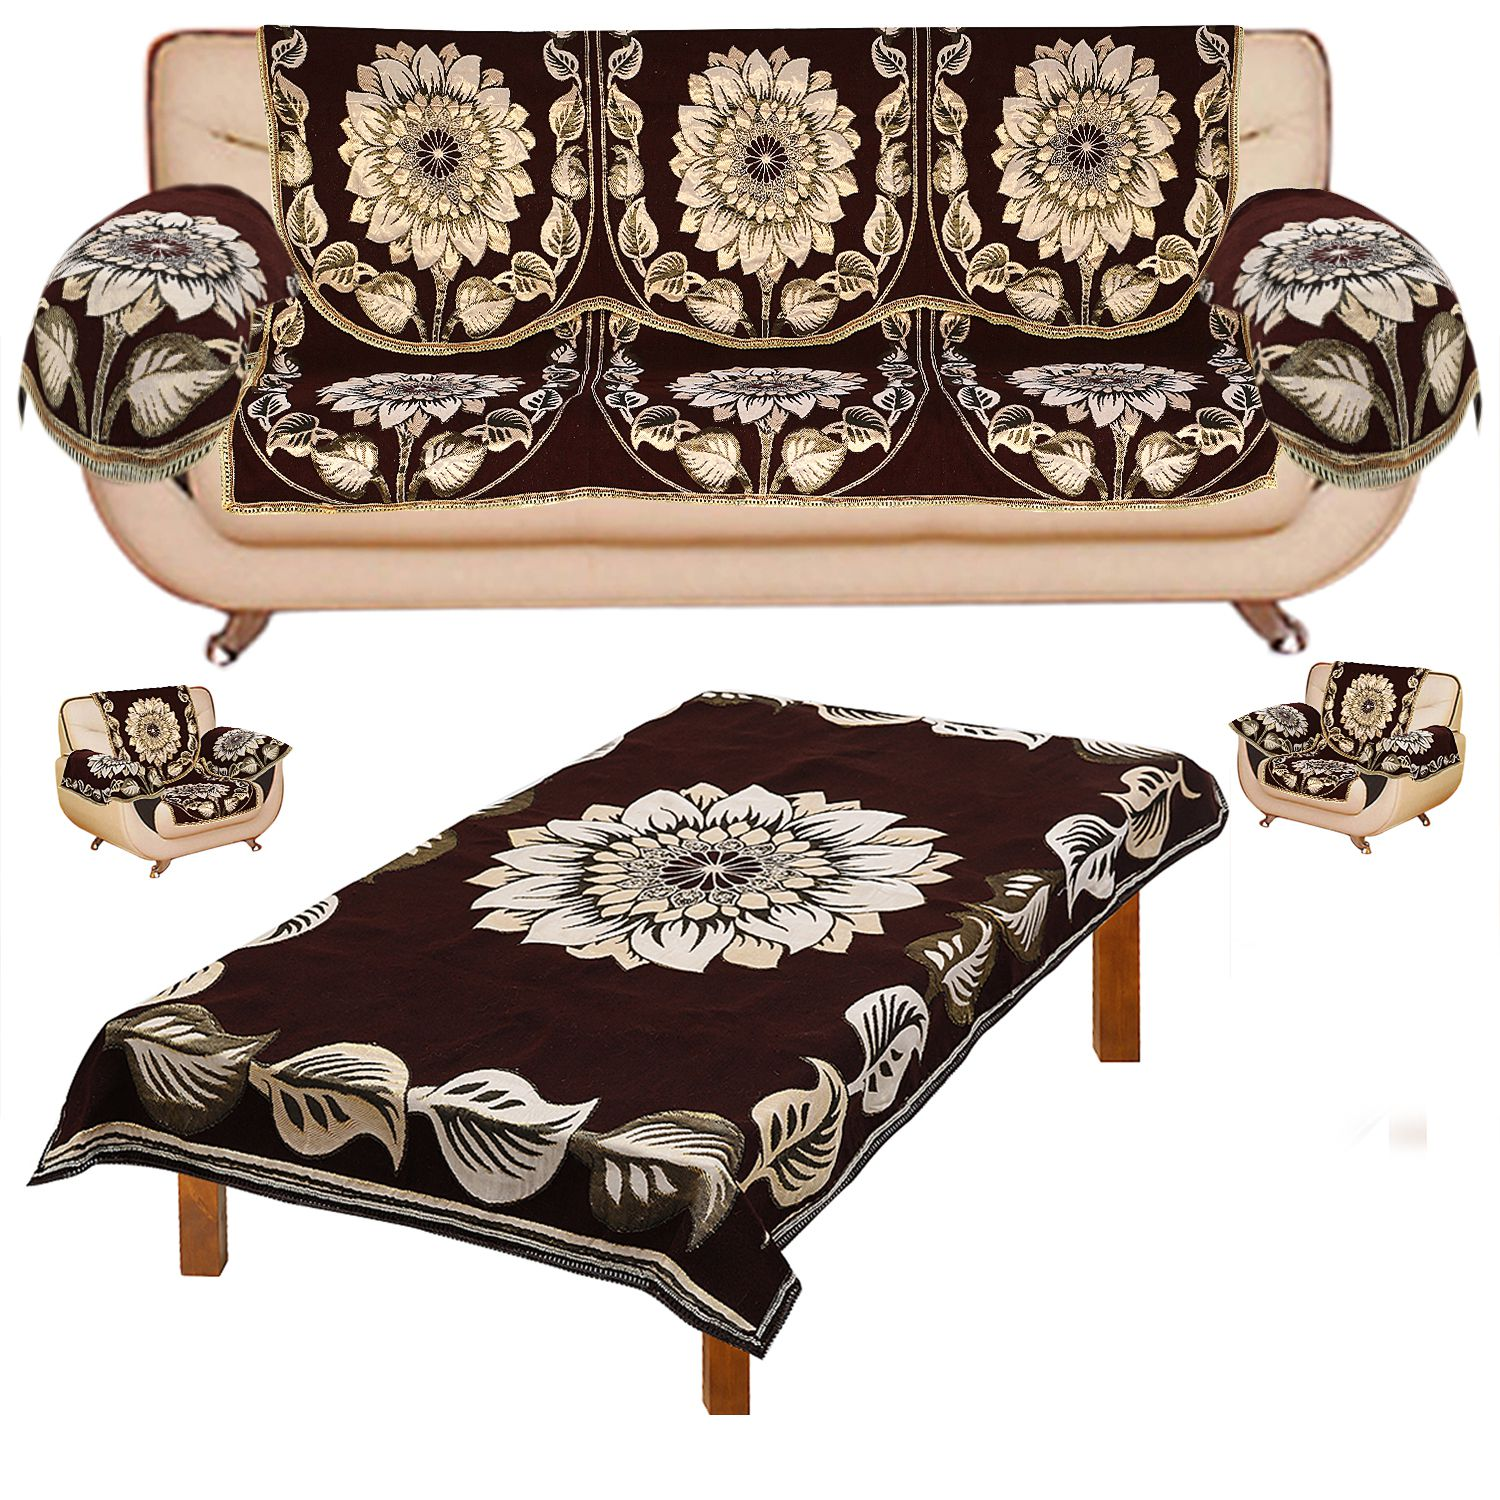 sofa covers low price cleaning bangalore fabnation designer combo 10 with 6 arm